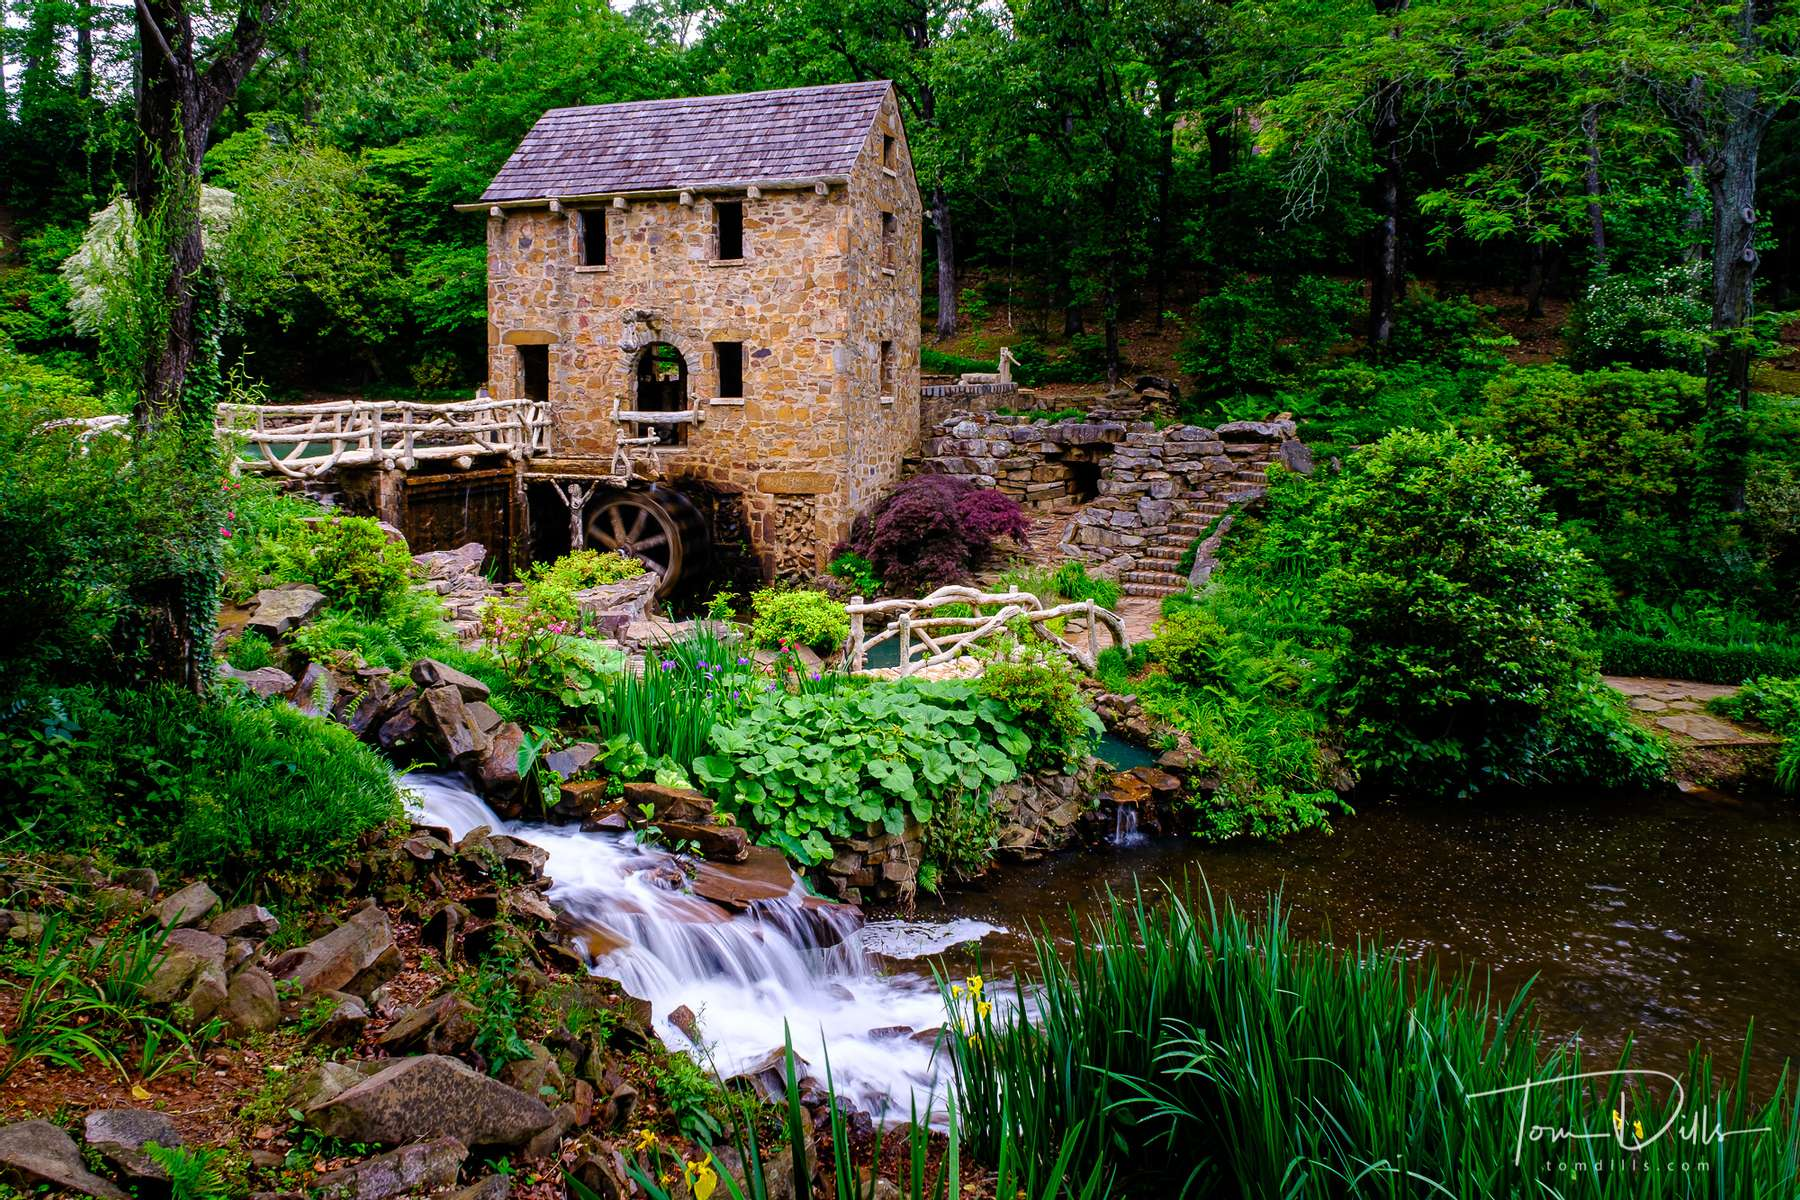 A historic re-creation of an 1880's water-powered grist mill. It is in the opening scenes of the classic movie {quote}Gone With The Wind.{quote} It features sculptures by Senor Dionicio Rodriguez and is listed on the National Register of Historic Places